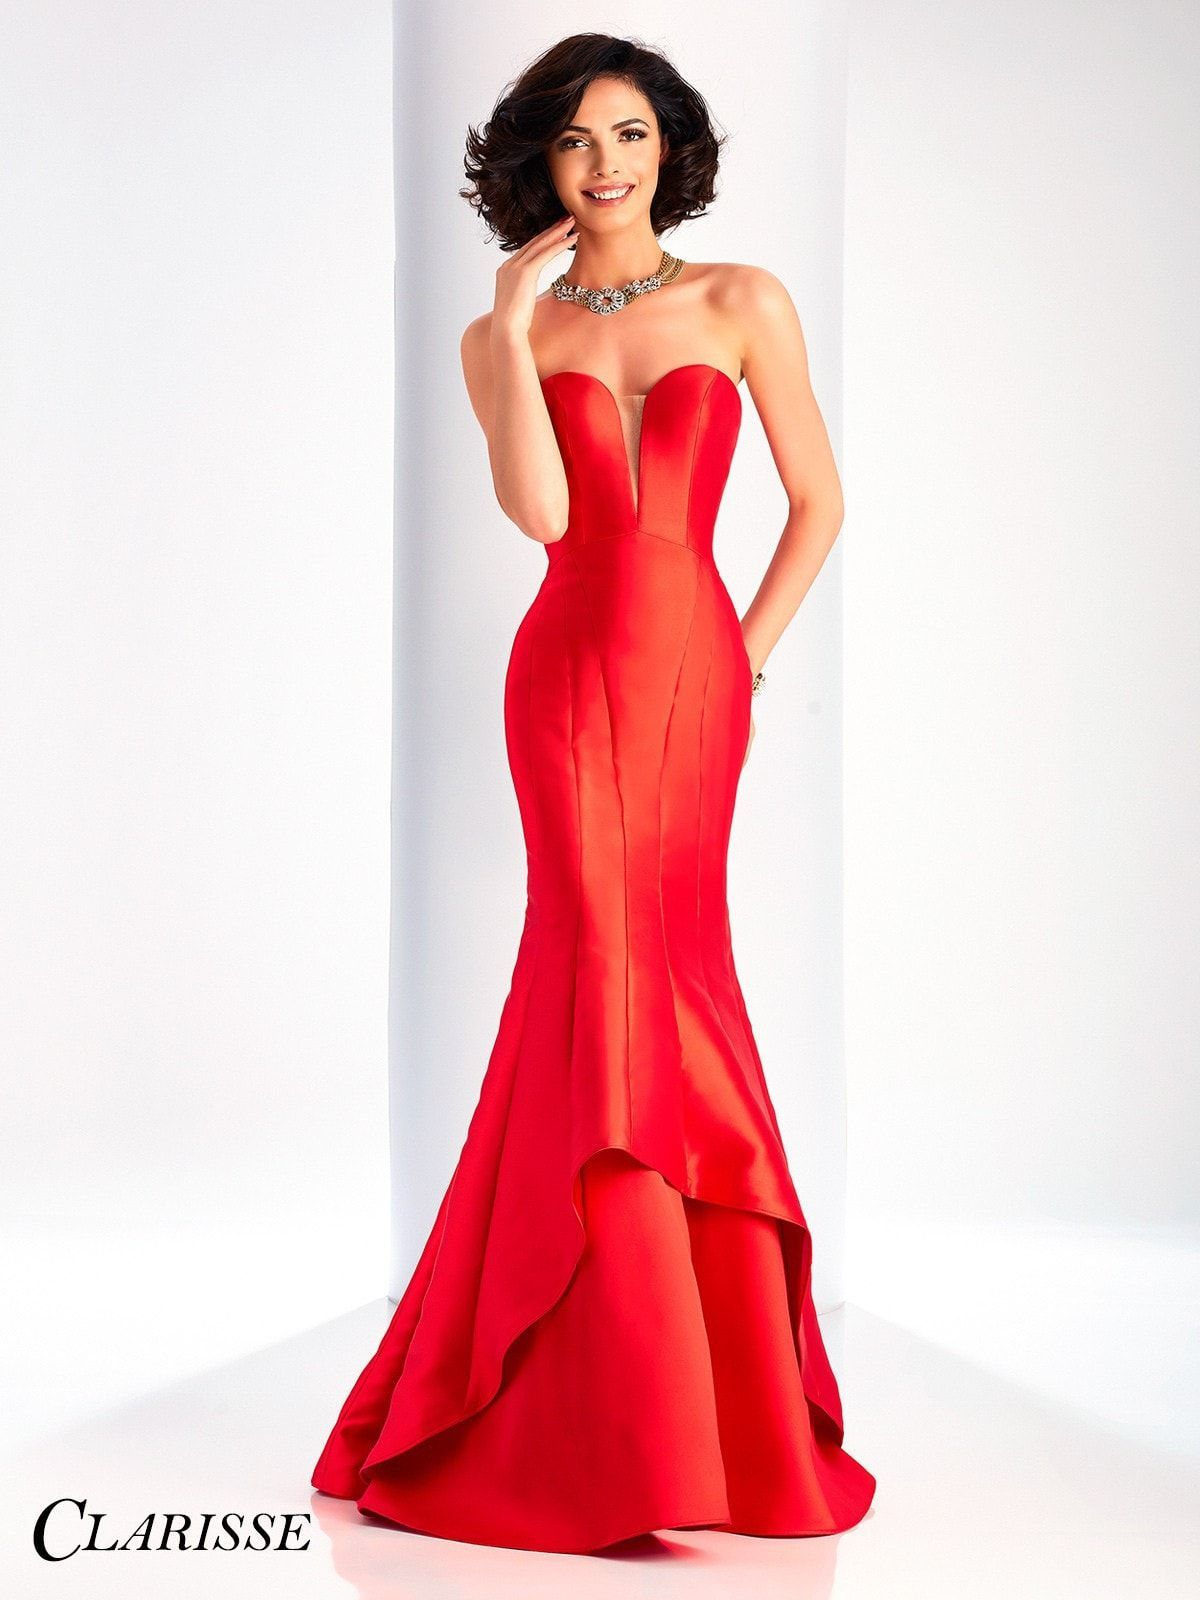 Clarisse Prom 3096 Lipstick Red Strapless Mermaid Prom Dress ...